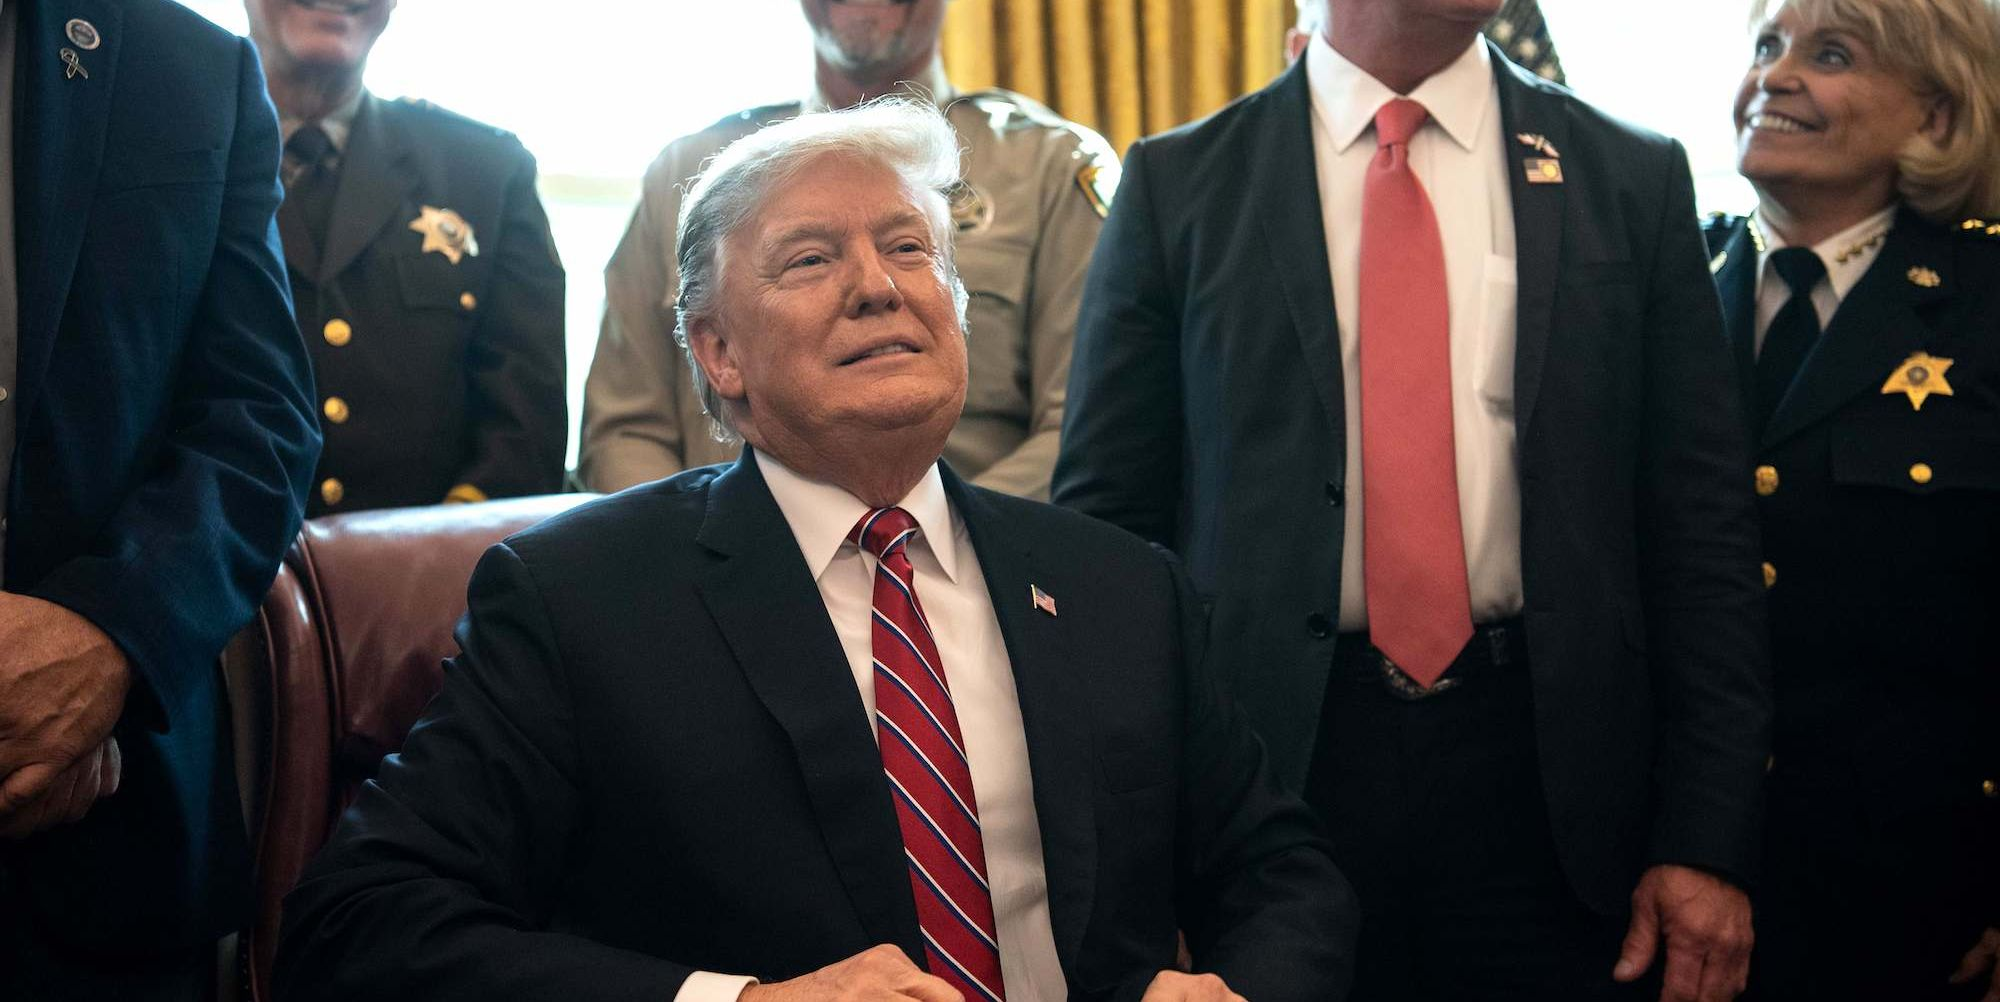 New Zealand Shooter Manifesto Update: President Trump Talks About 'Invasion' Hours After New